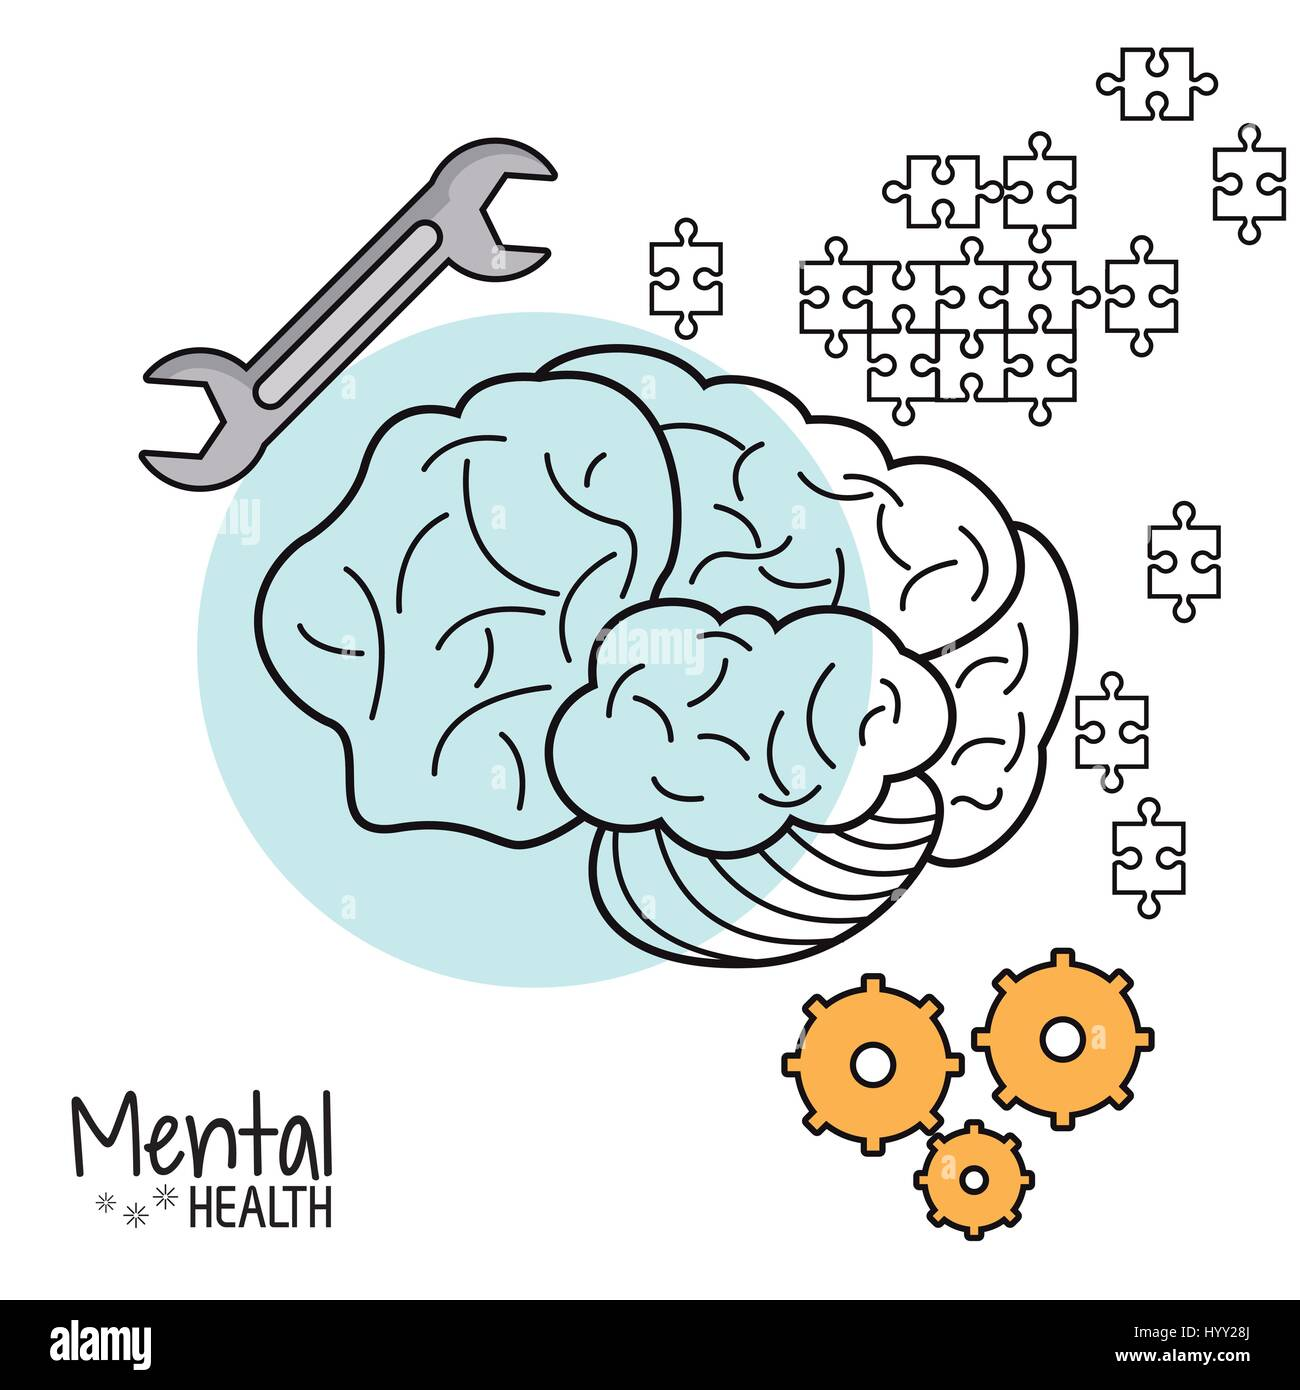 mental health brain gear puzzle tool - Stock Image